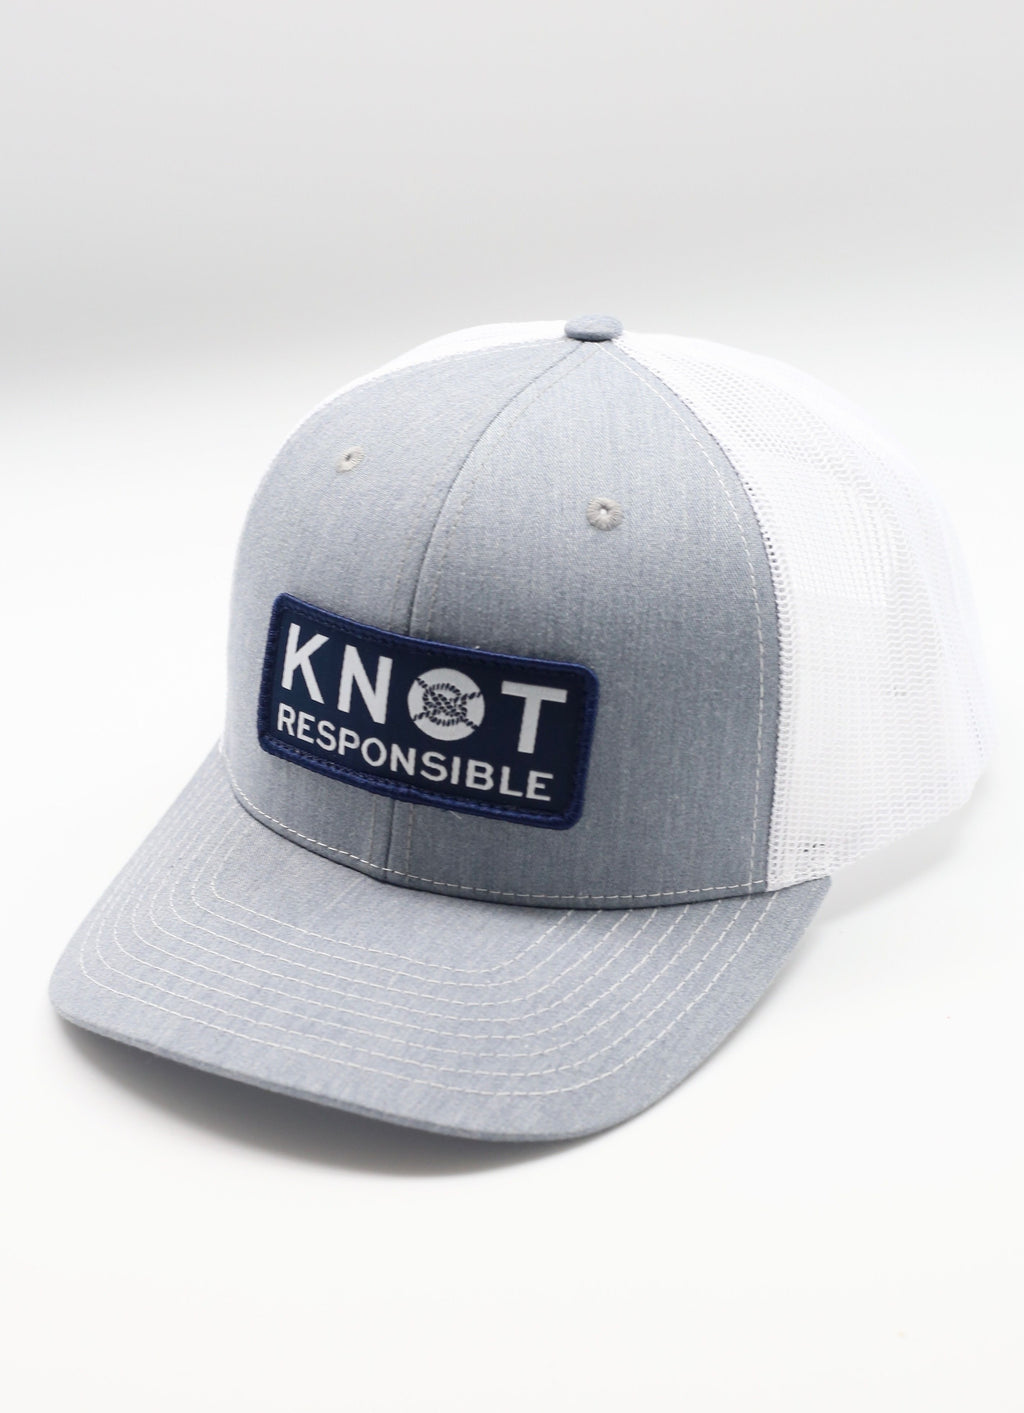 Original Trucker Hat Stacked Logo- Gray/White